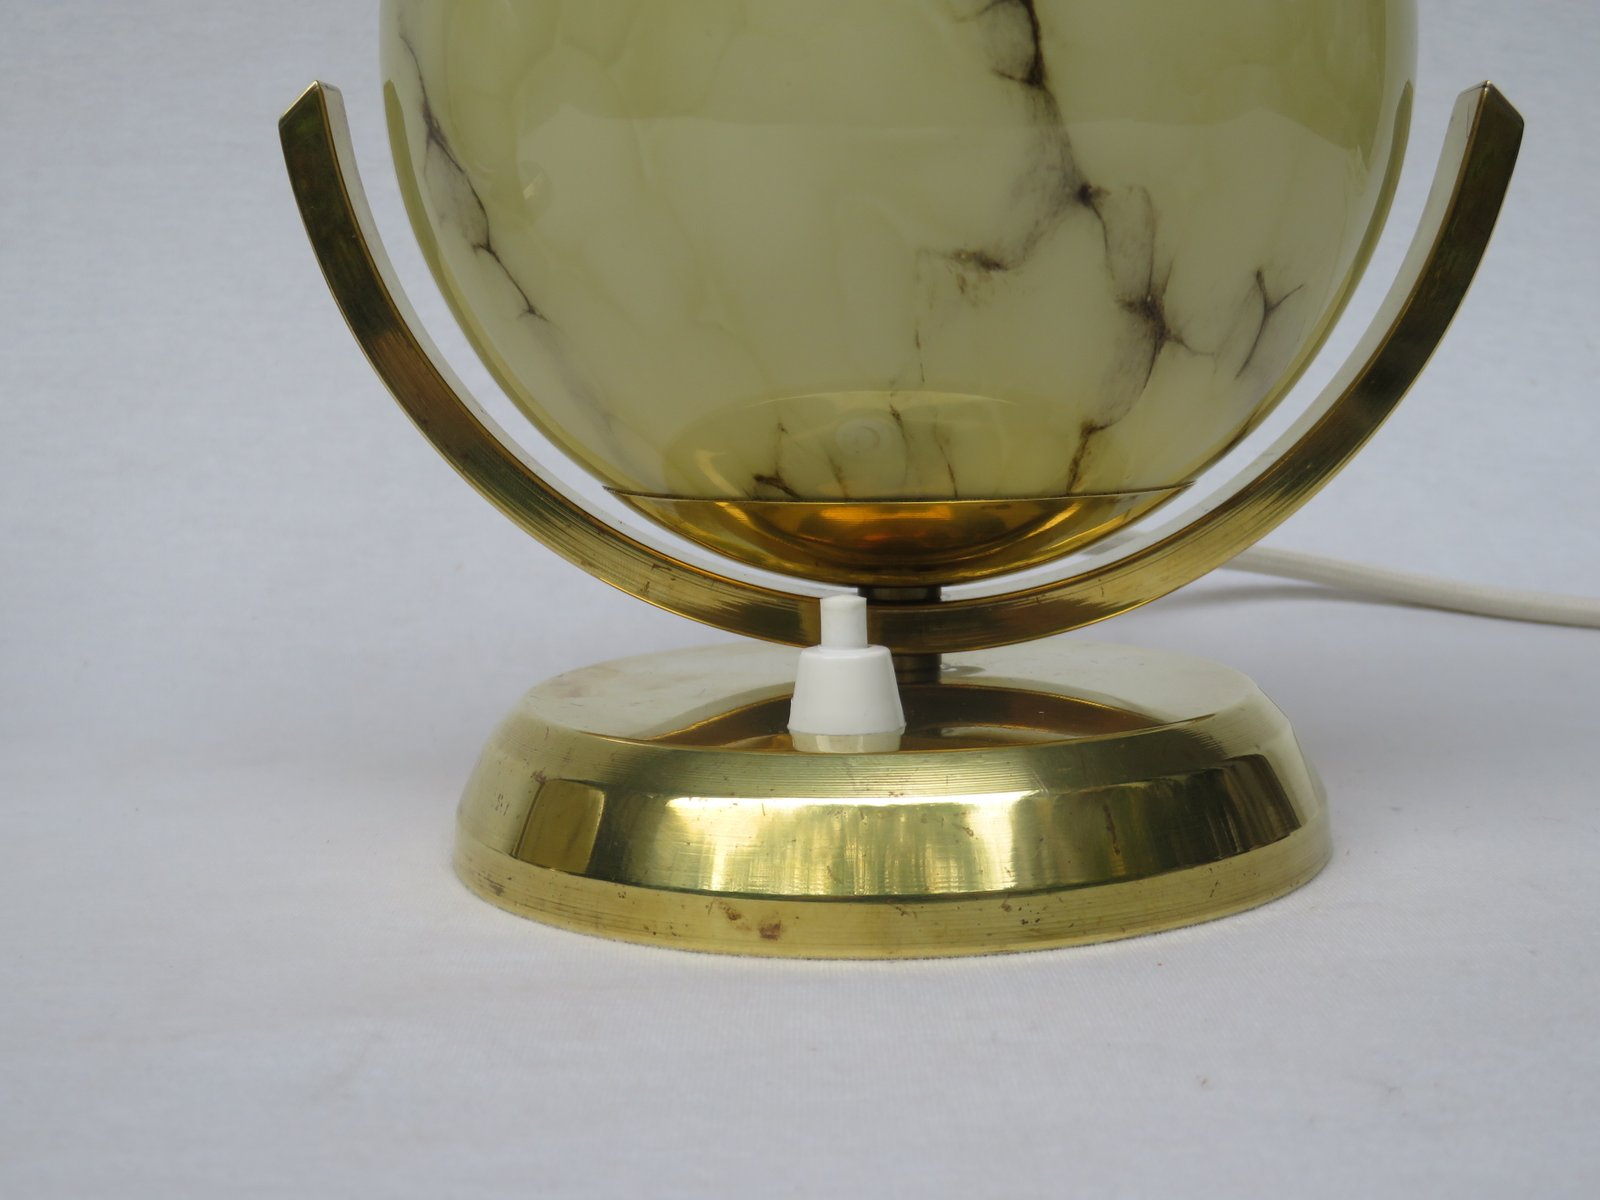 Brass Touch Lamps Bedside Vintage Art Deco Brass Bedside Lamps Set Of 2 For Sale At